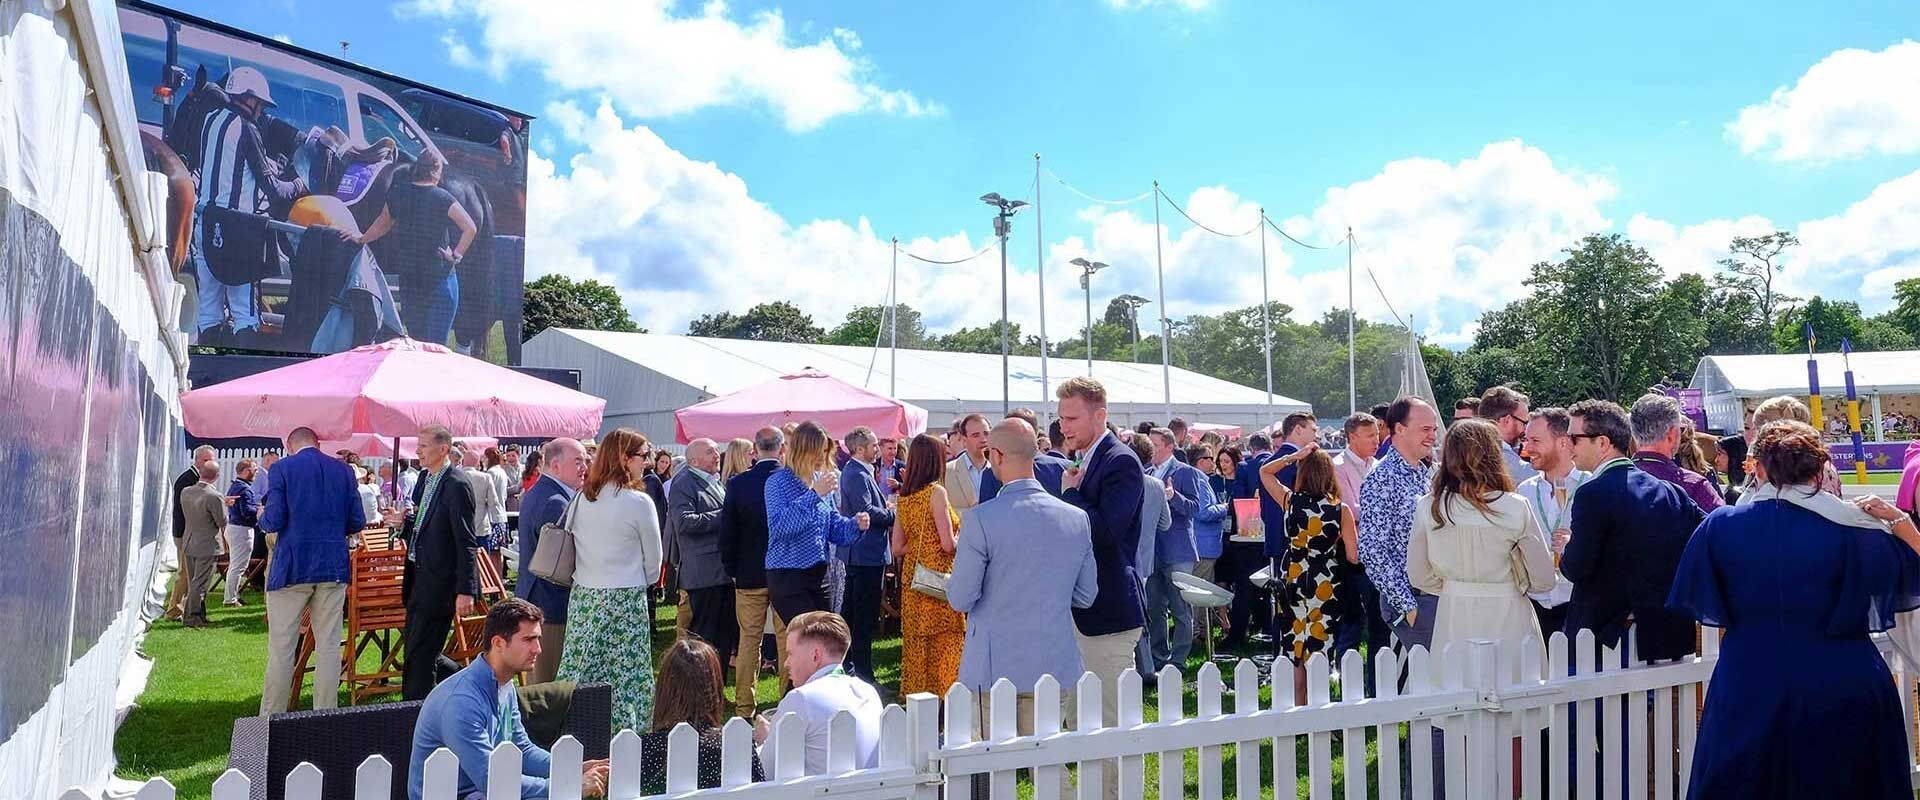 Chestertons Polo in the Park - exclusive packages with justbookitnow.com